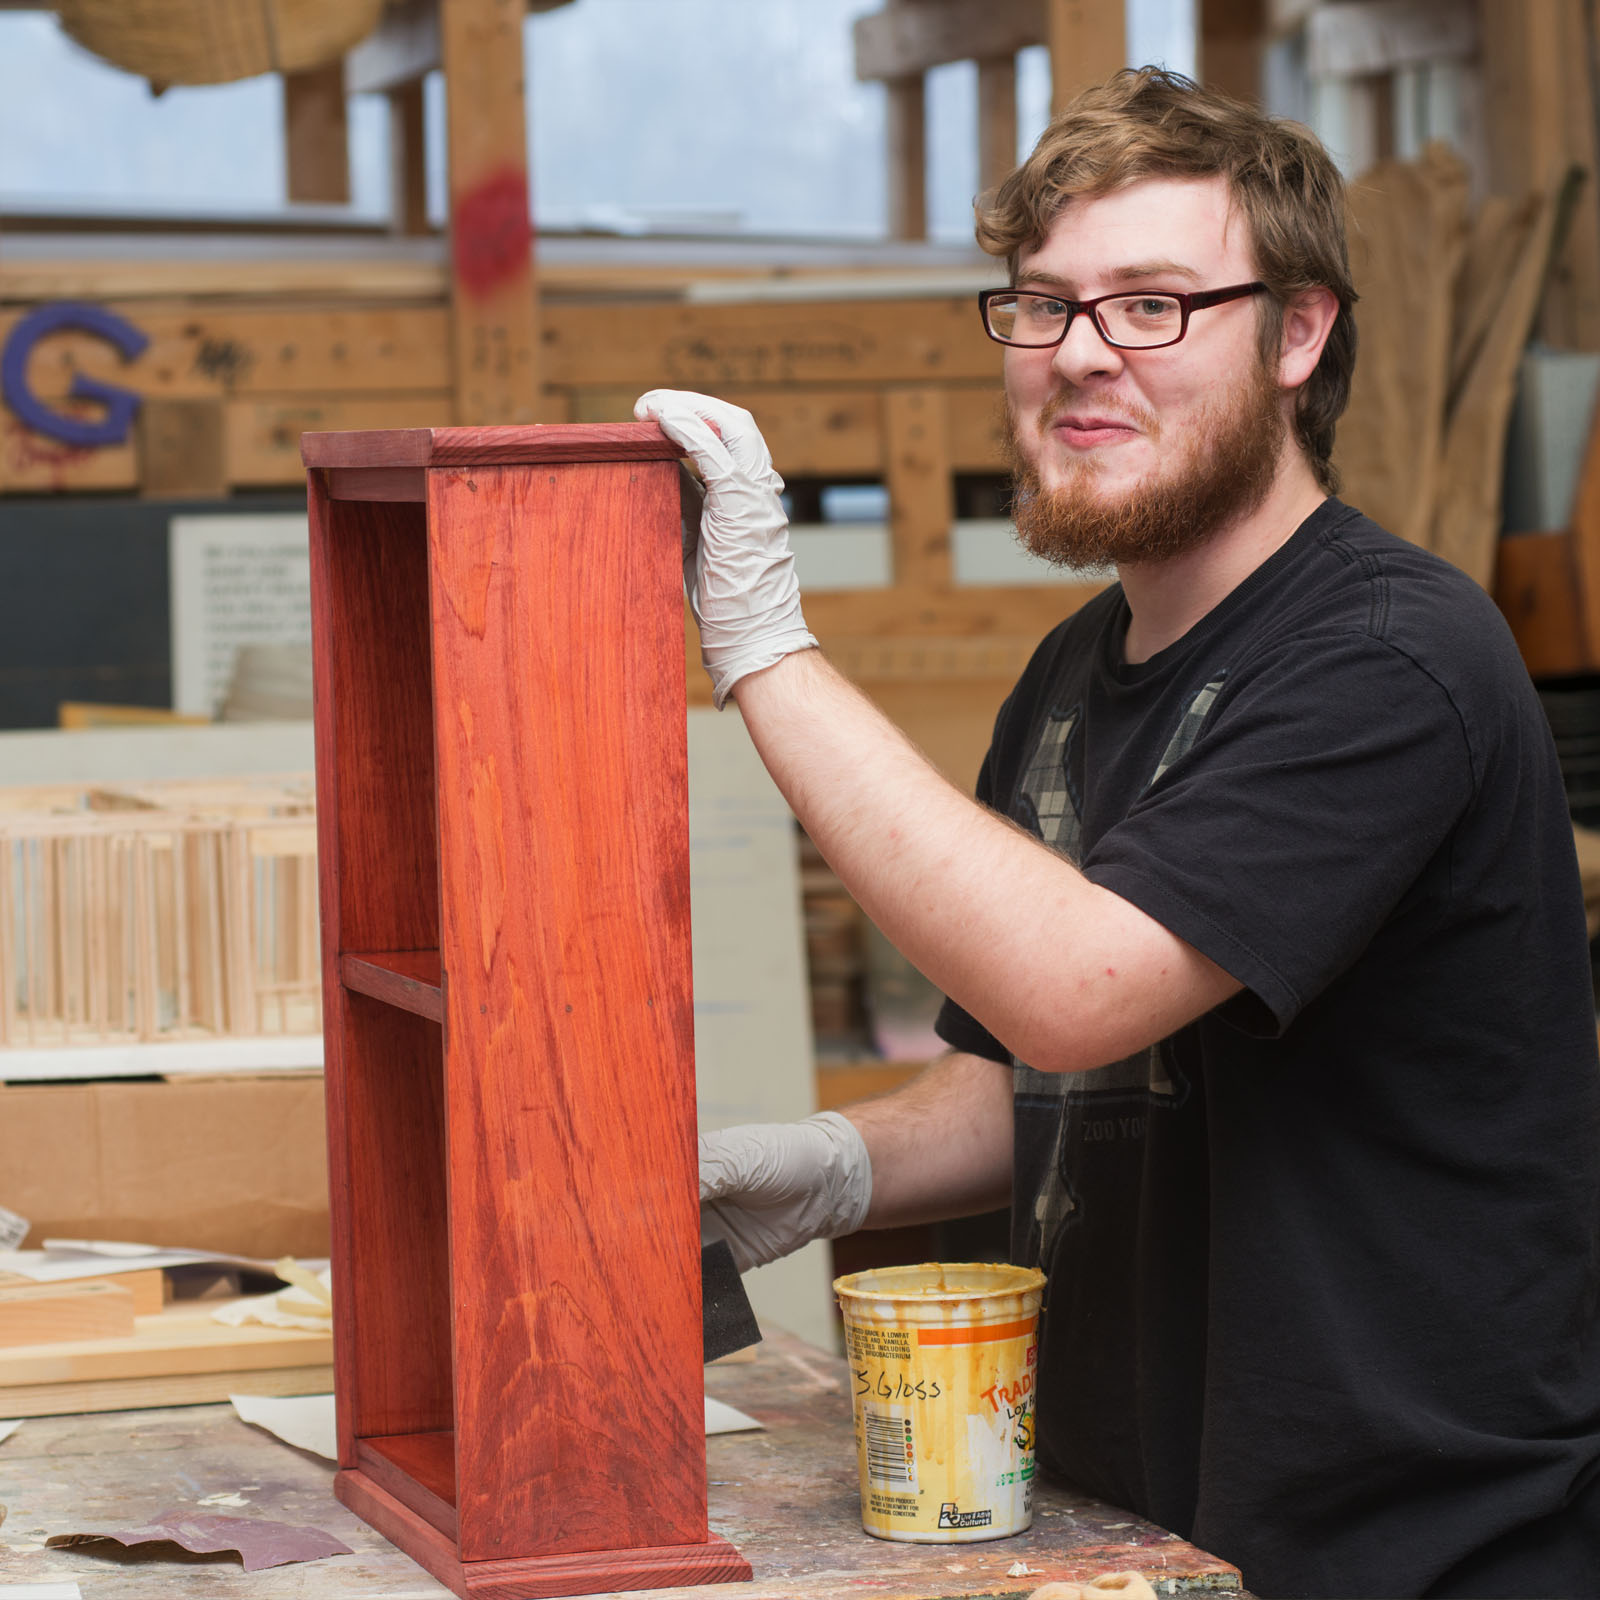 Carpentry student working on a project - Willingboro NJ - private special education school